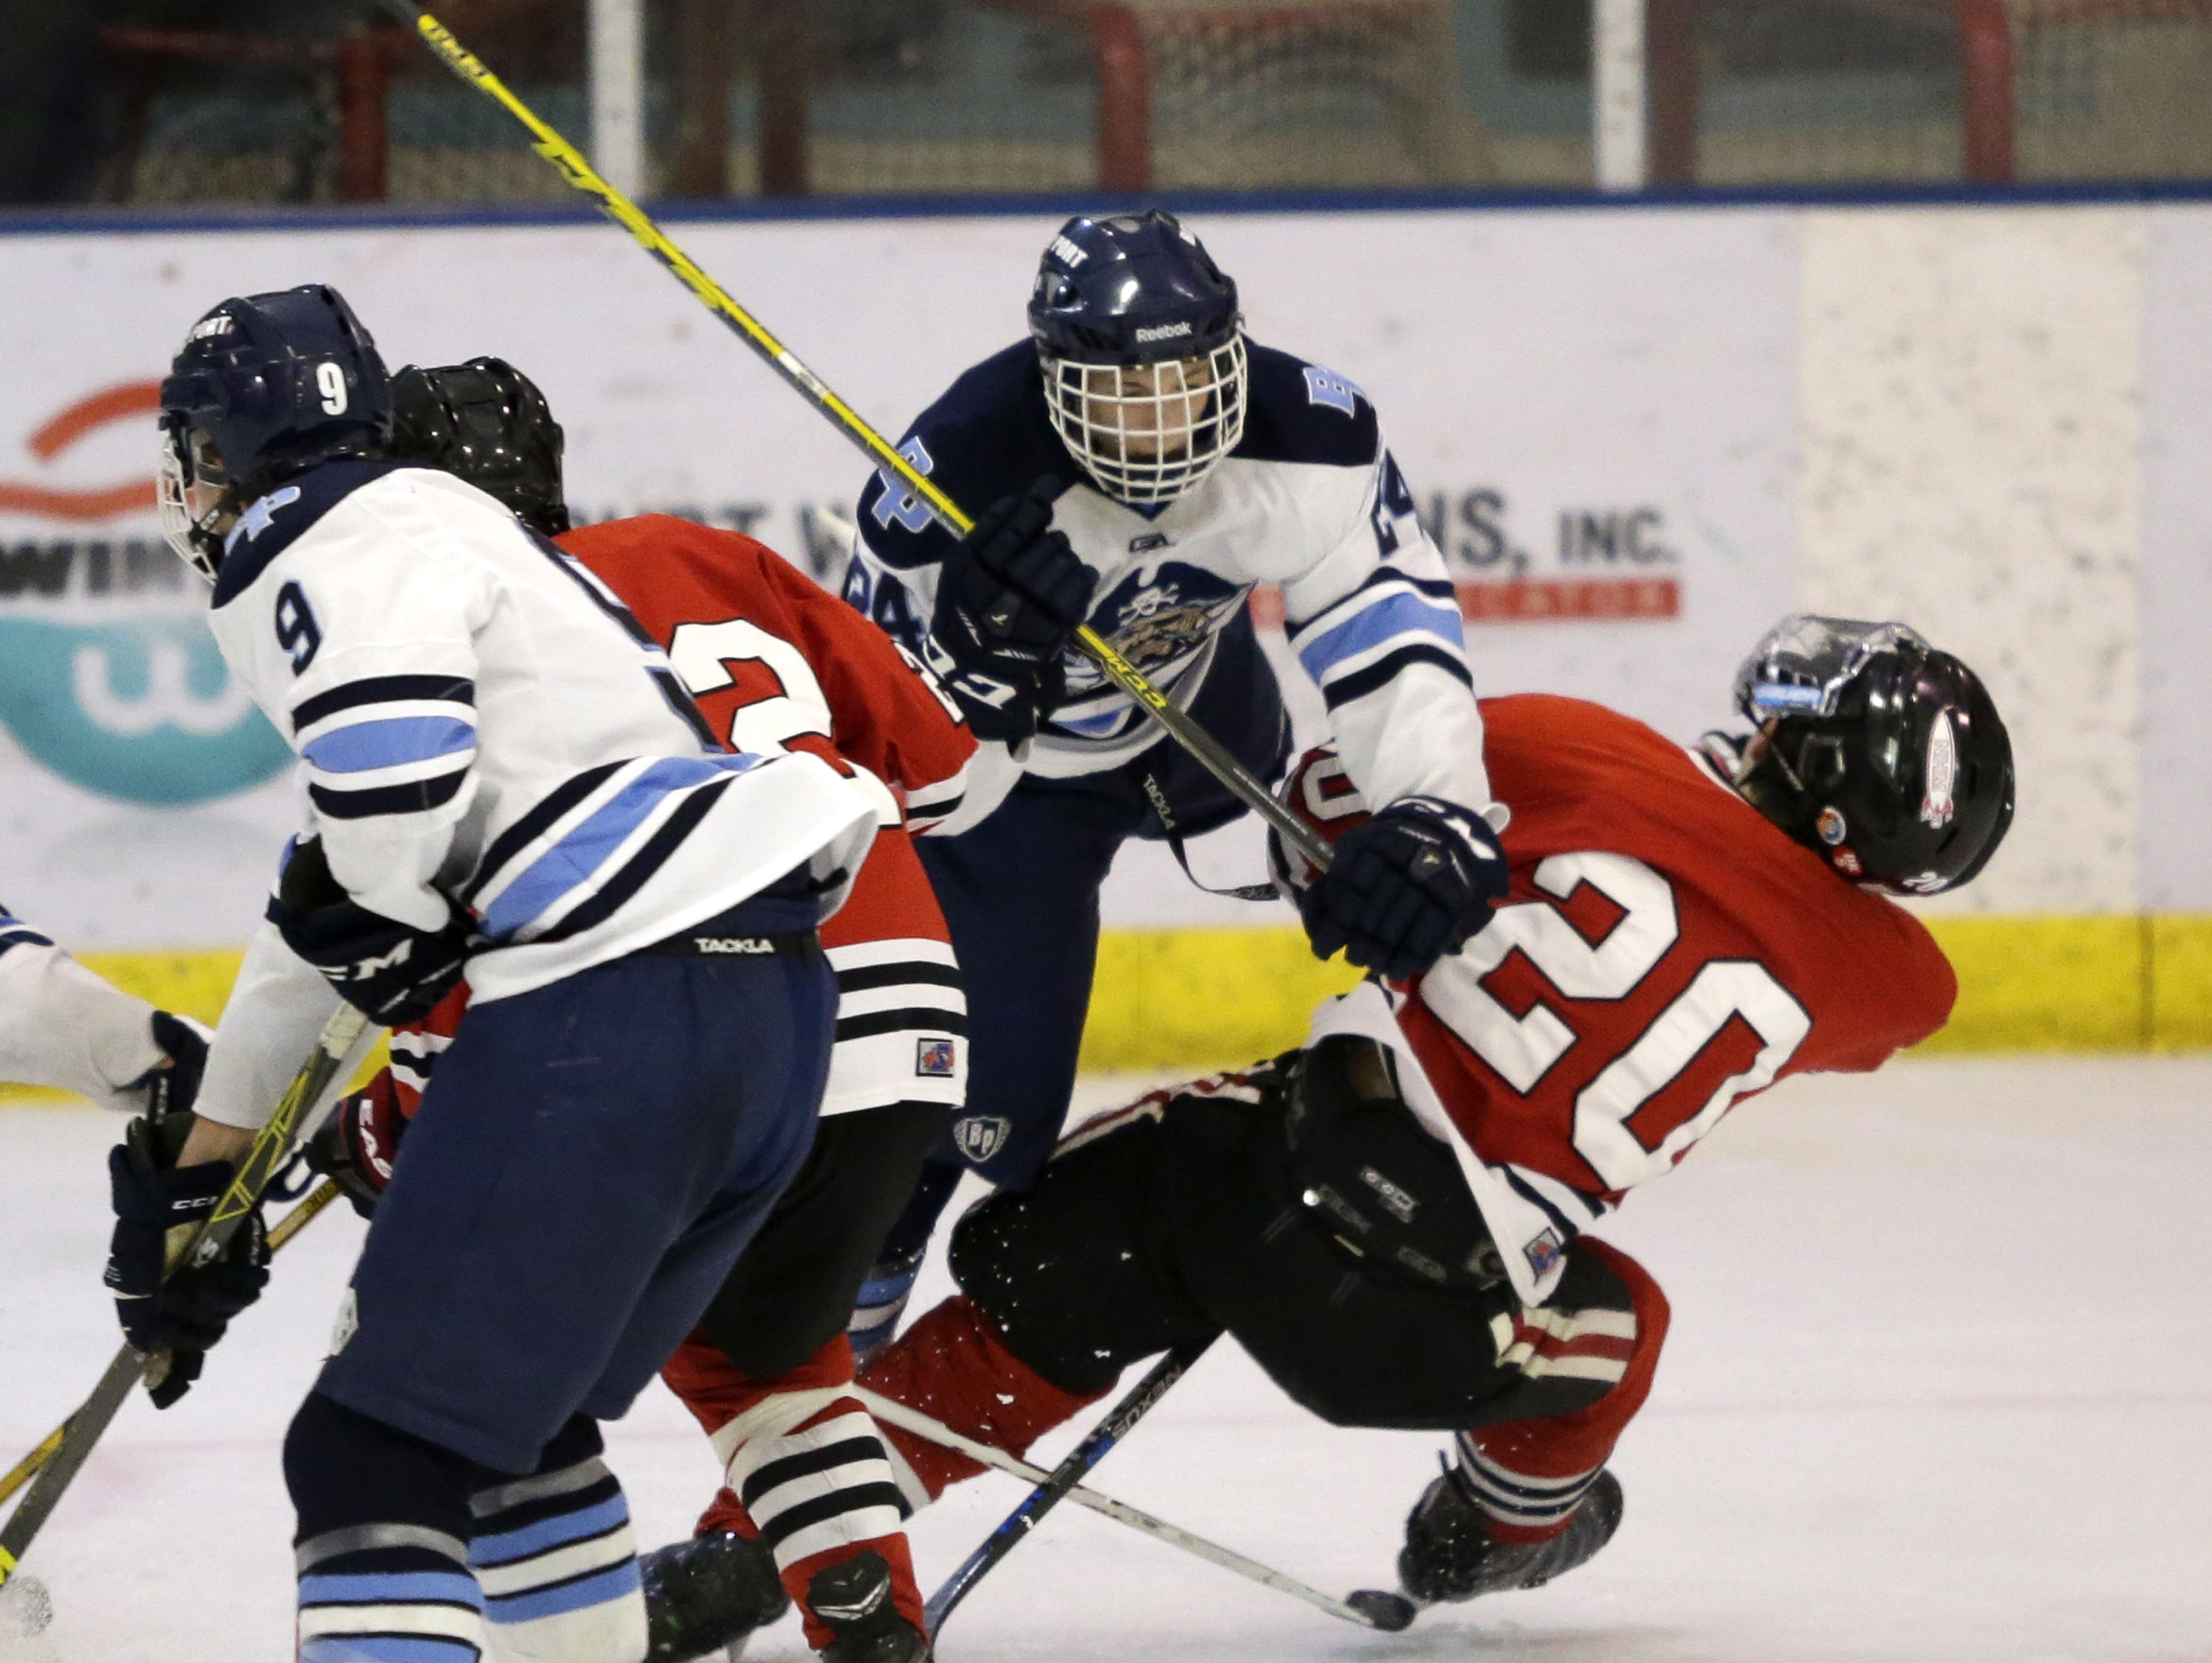 Bay Port's Spencer Kring delivers a hit to NHM's Max Hackinson during a boys hockey game last year. Kring had a game-winning goal in overtime Saturday over the co-op team.